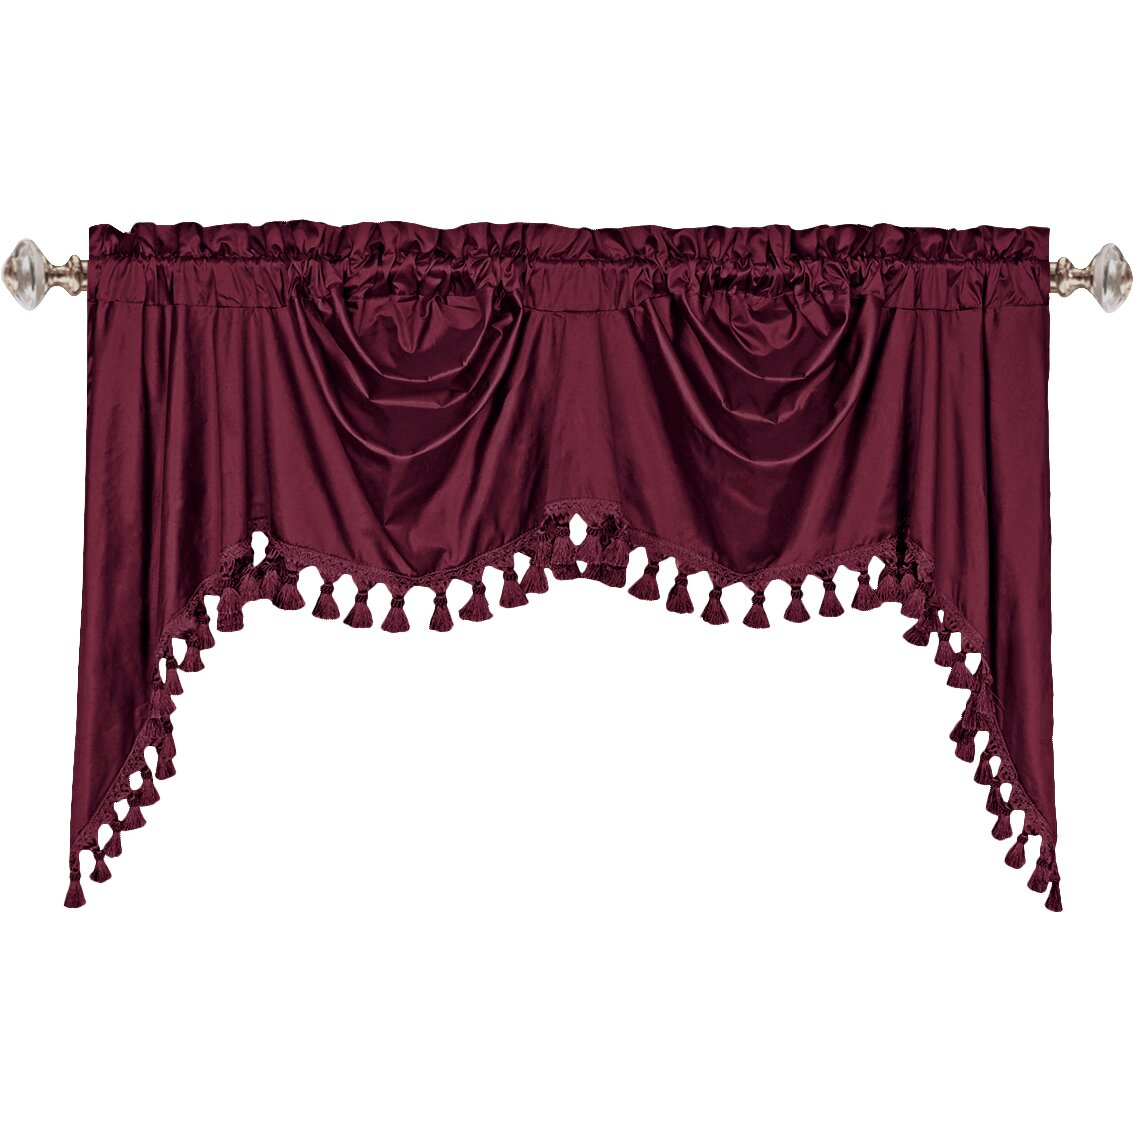 Swag curtains pattern - United Curtain Co Dupioni Silk Rod Pocket Swag 108 Quot Curtain Valance